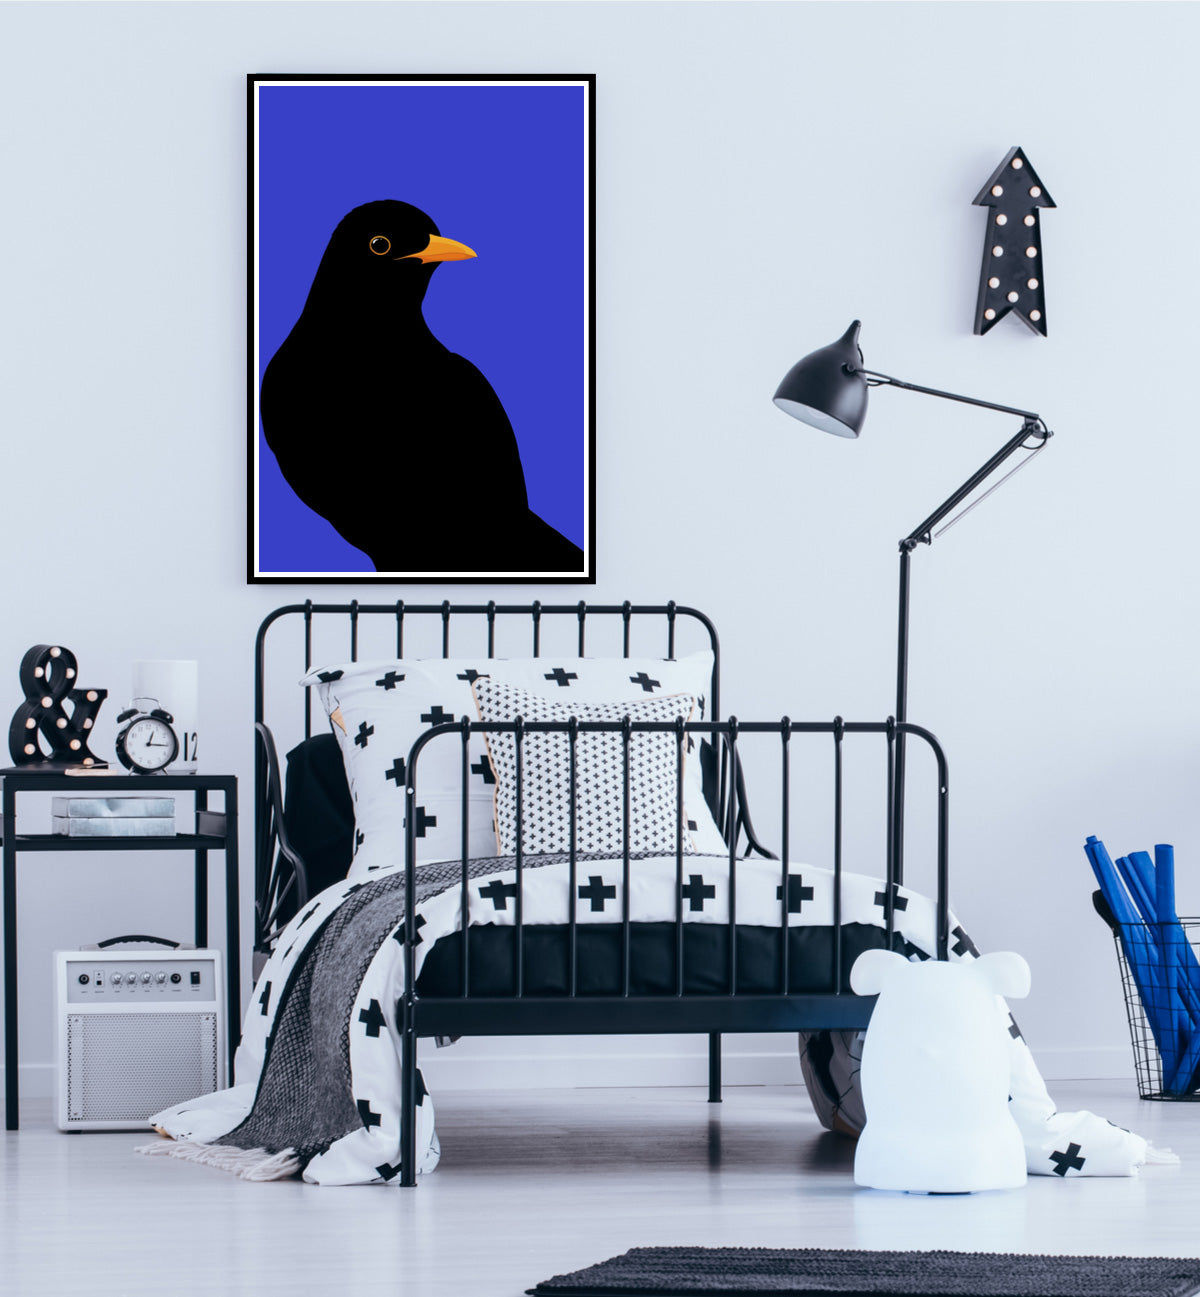 Framed print of the Blackbird on a bedroom wall